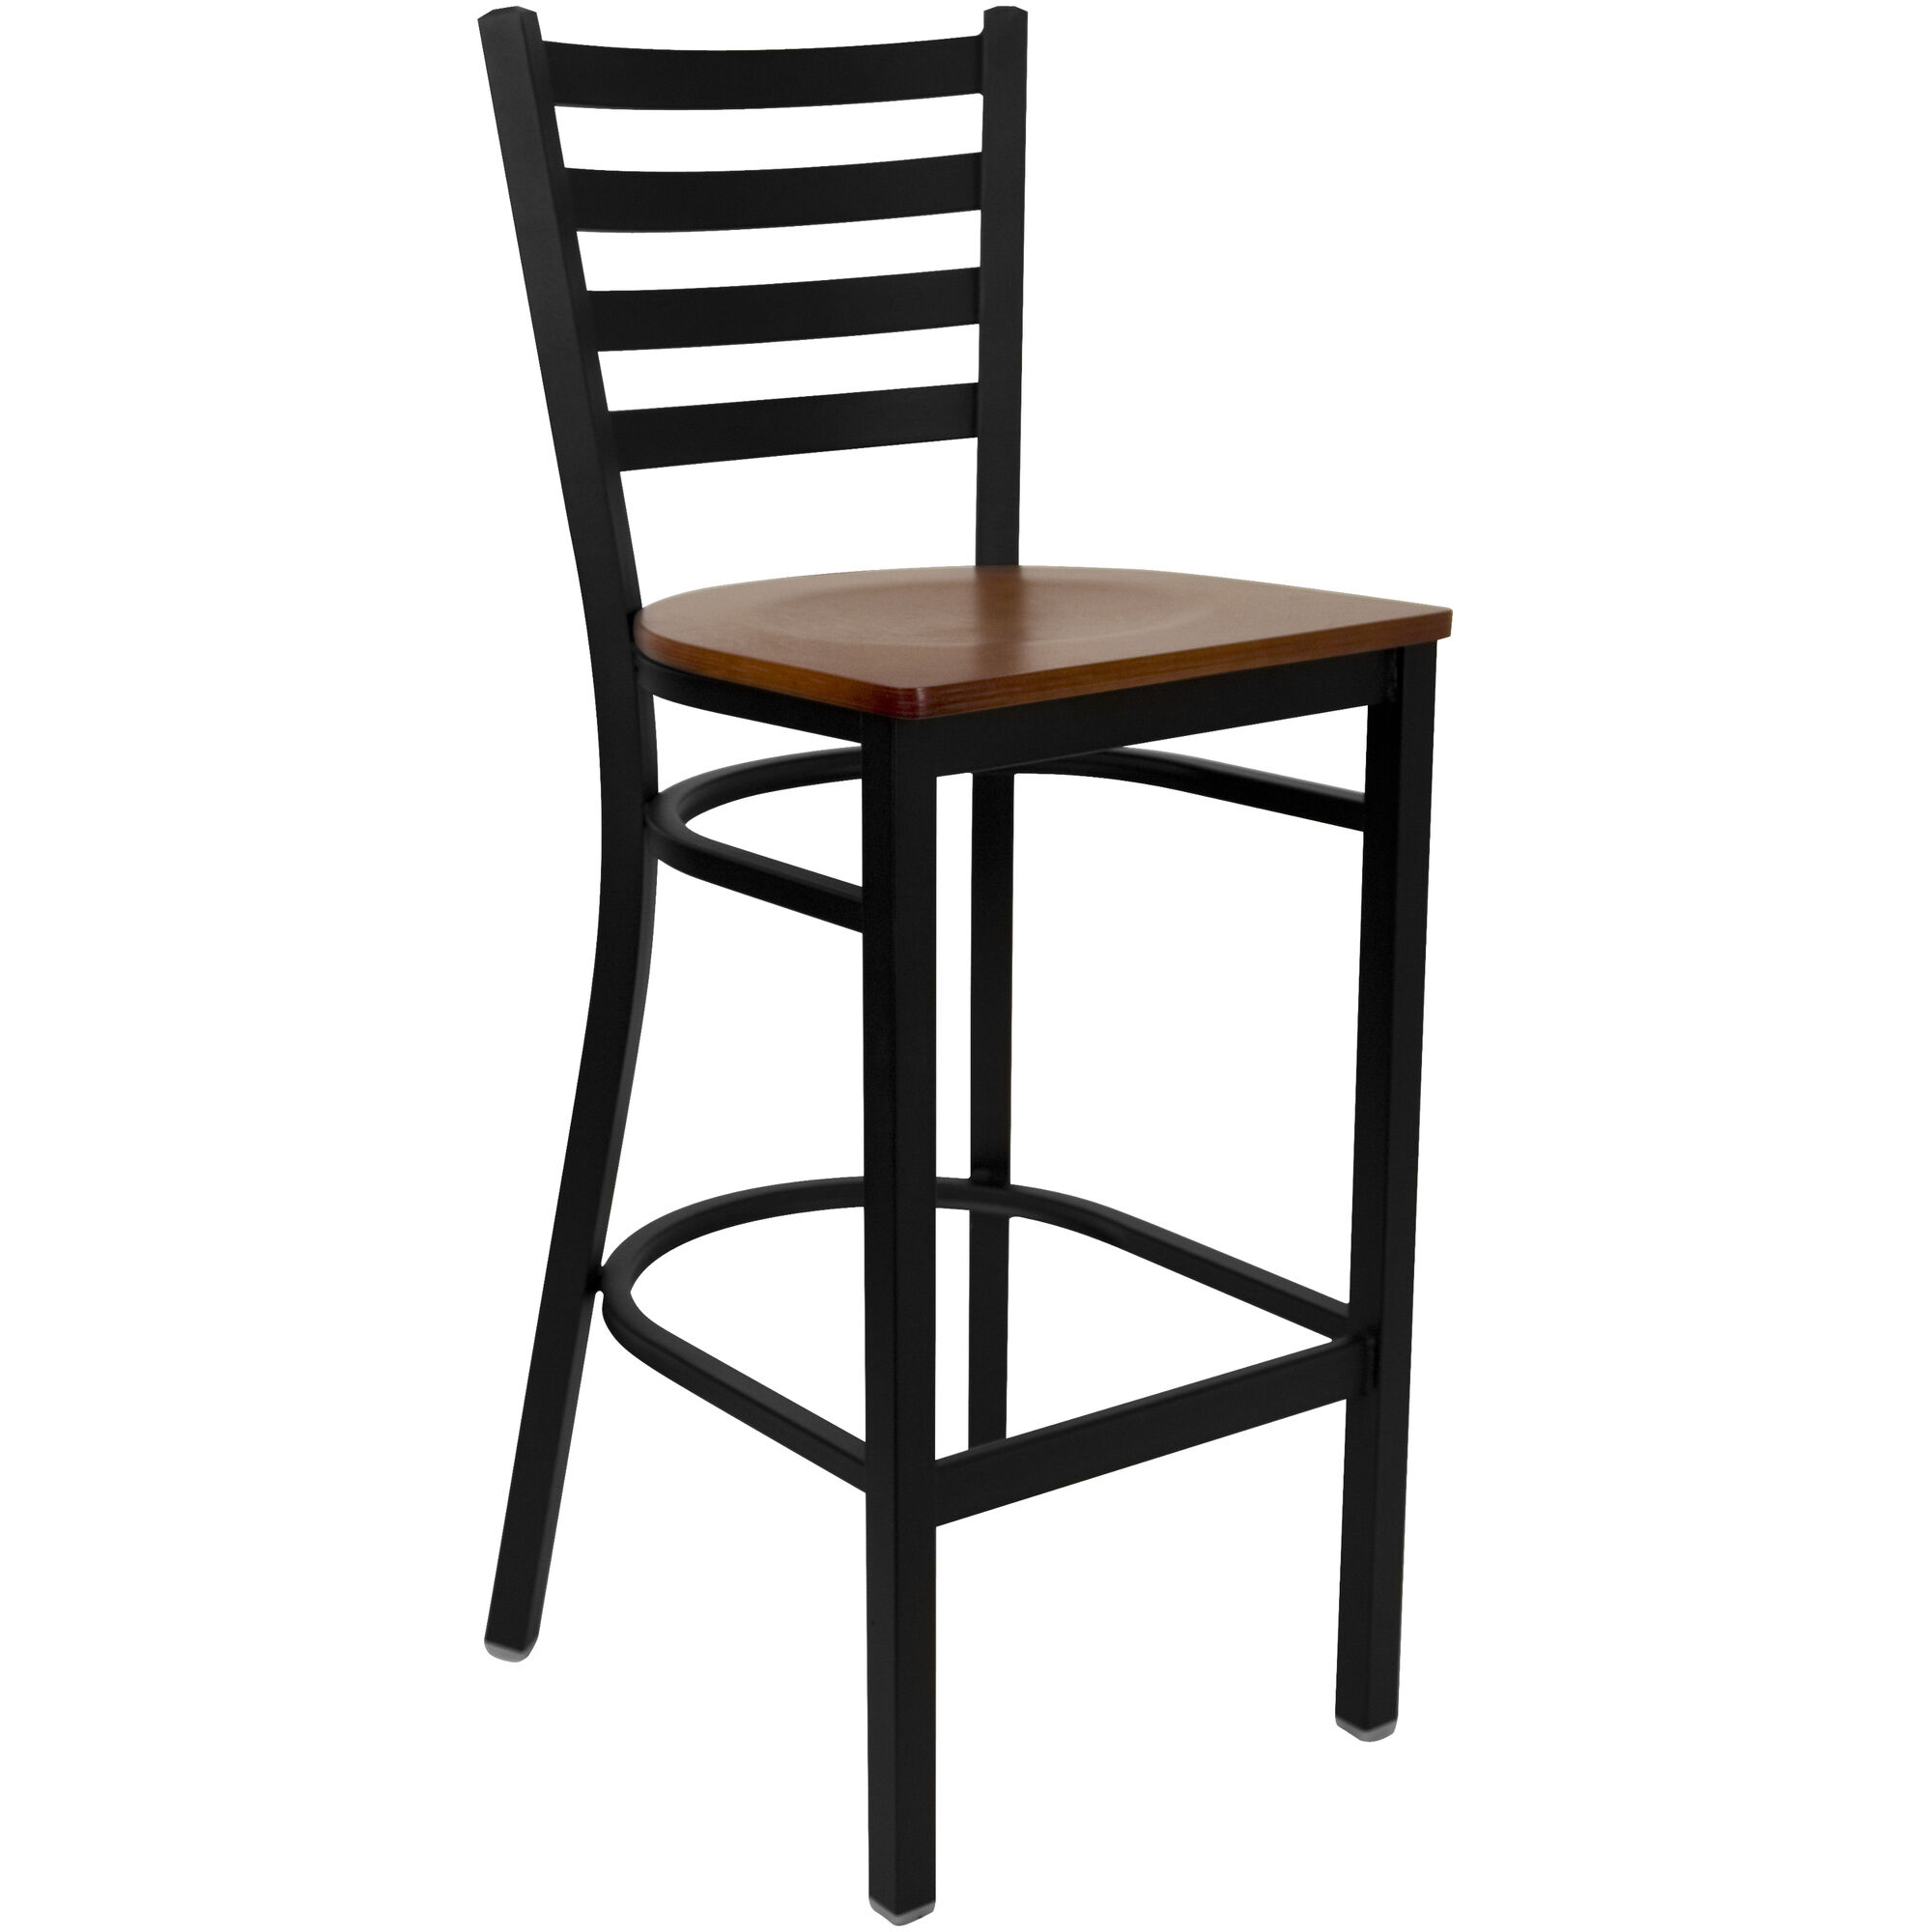 Magnificent Hercules Series Black Ladder Back Metal Restaurant Barstool Cherry Wood Seat Alphanode Cool Chair Designs And Ideas Alphanodeonline